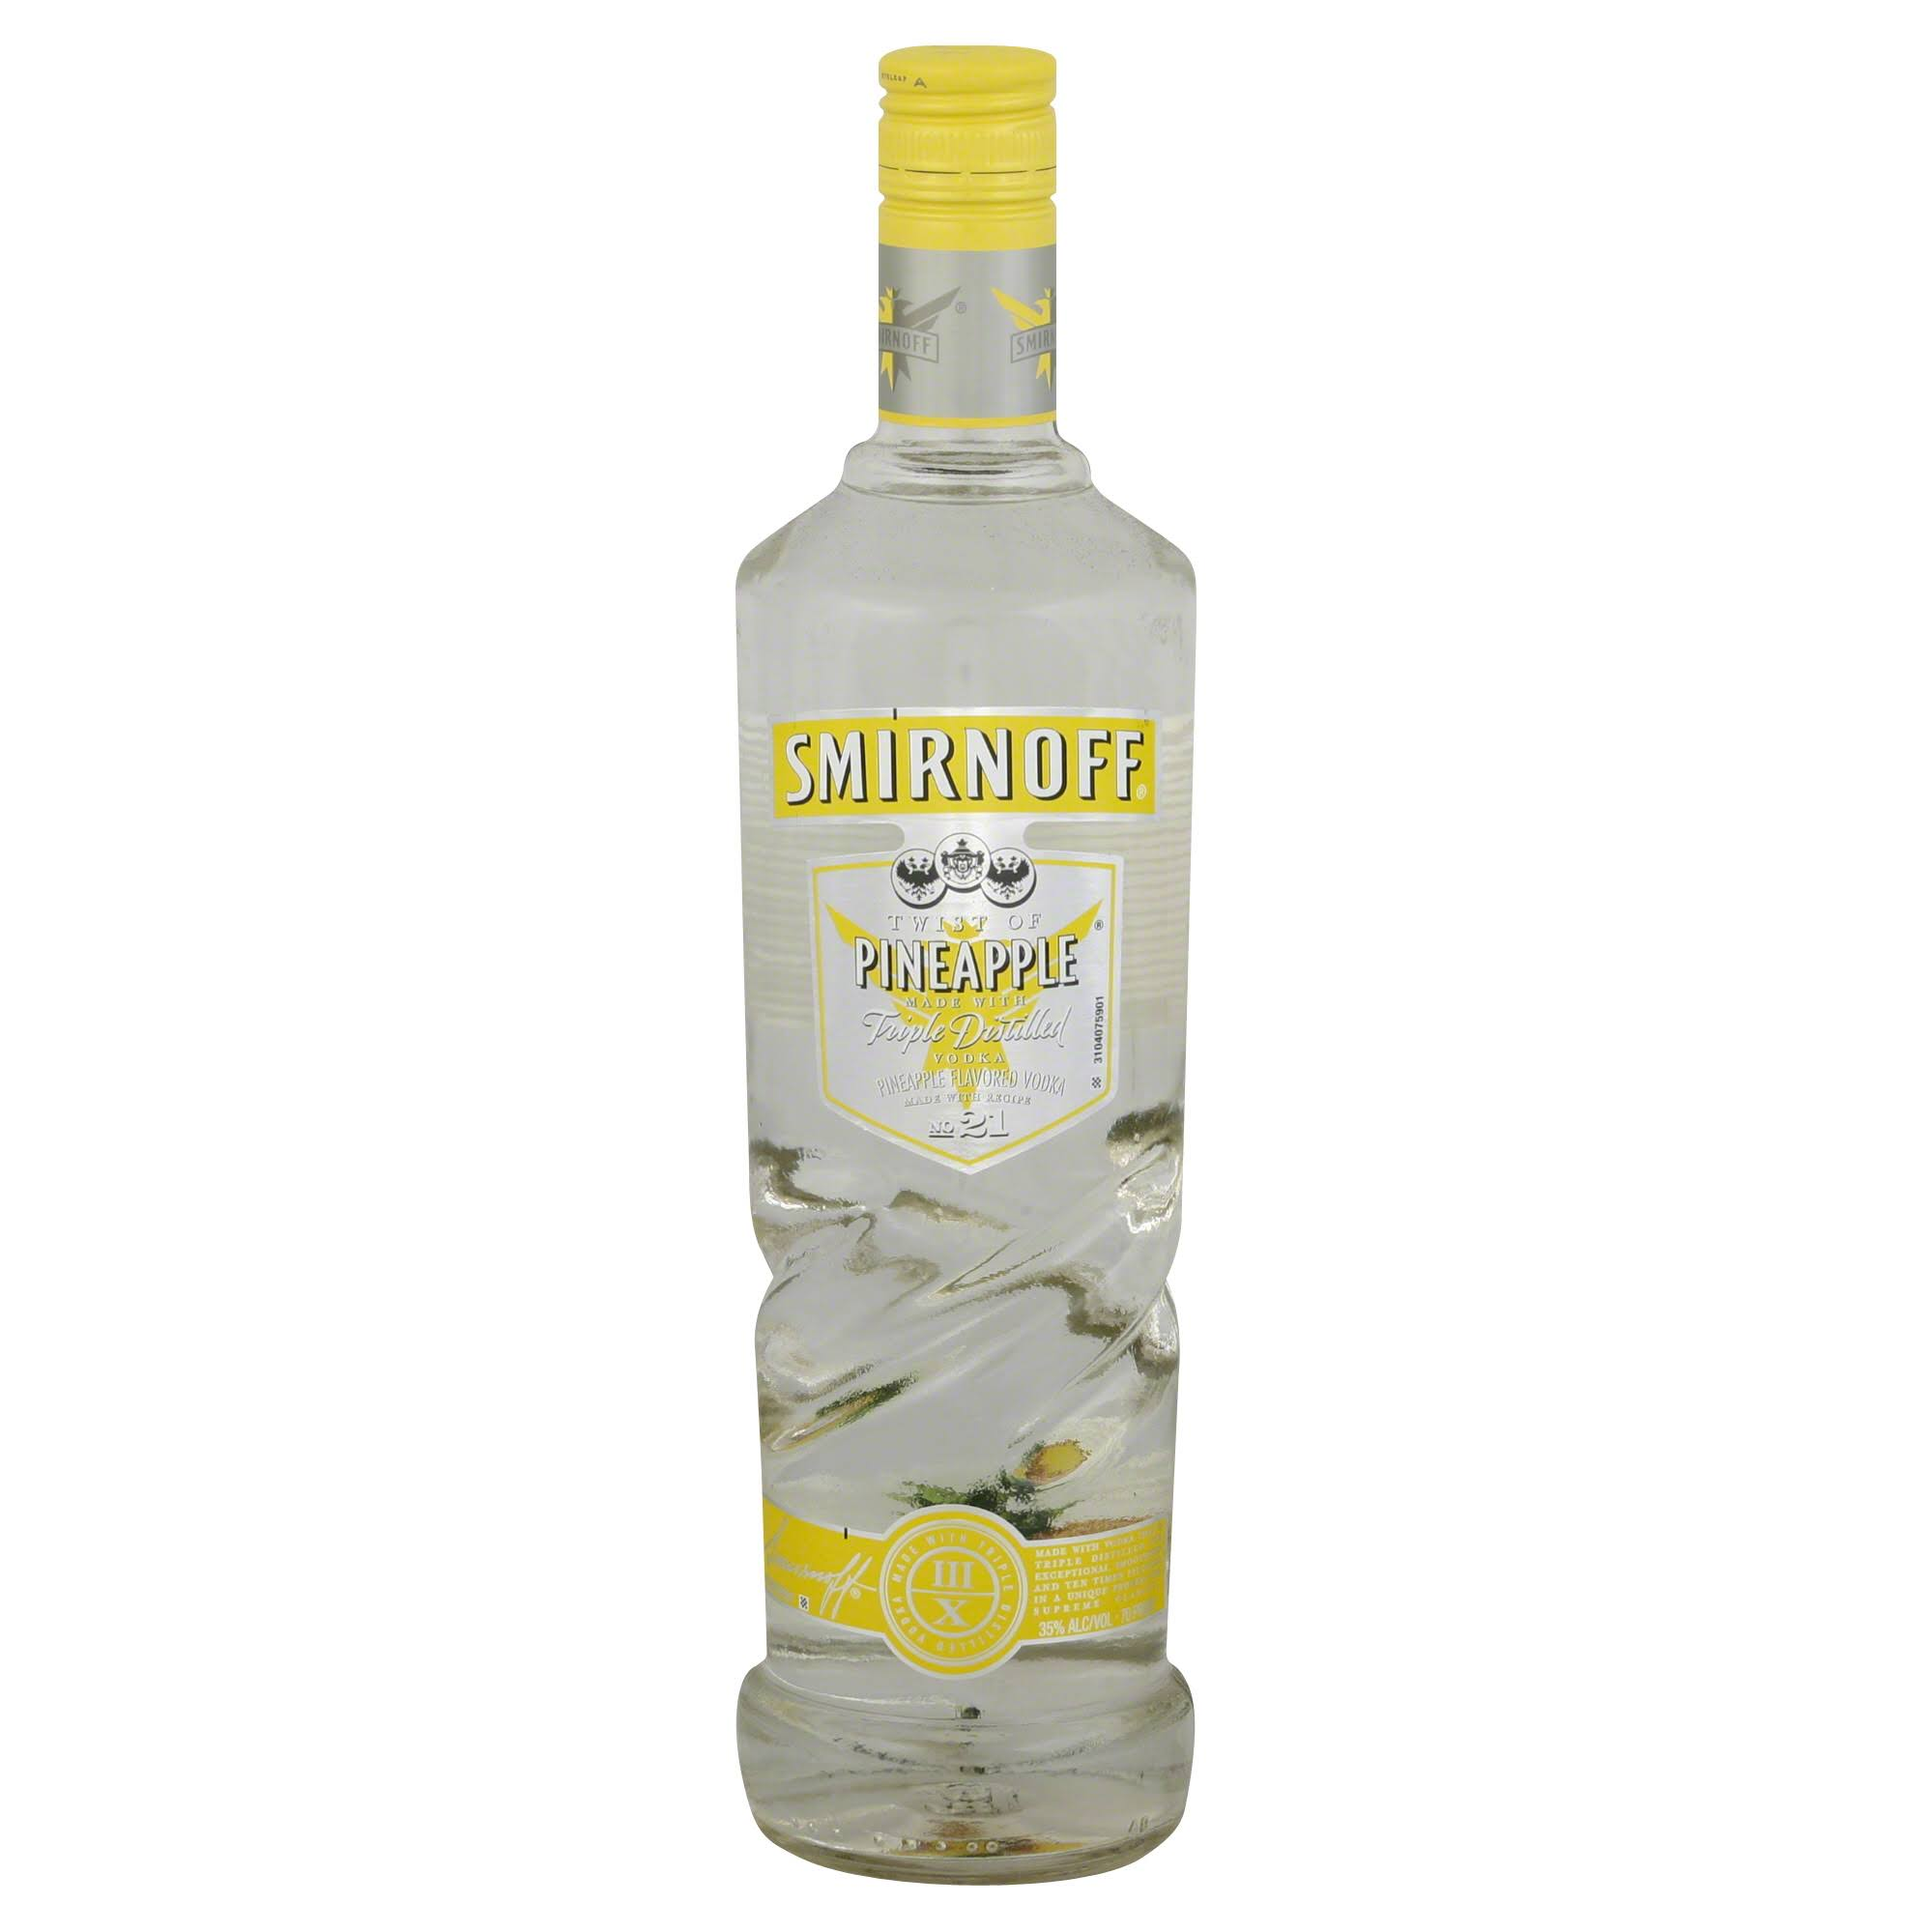 Smirnoff Vodka, Twist of Pineapple - 750 ml